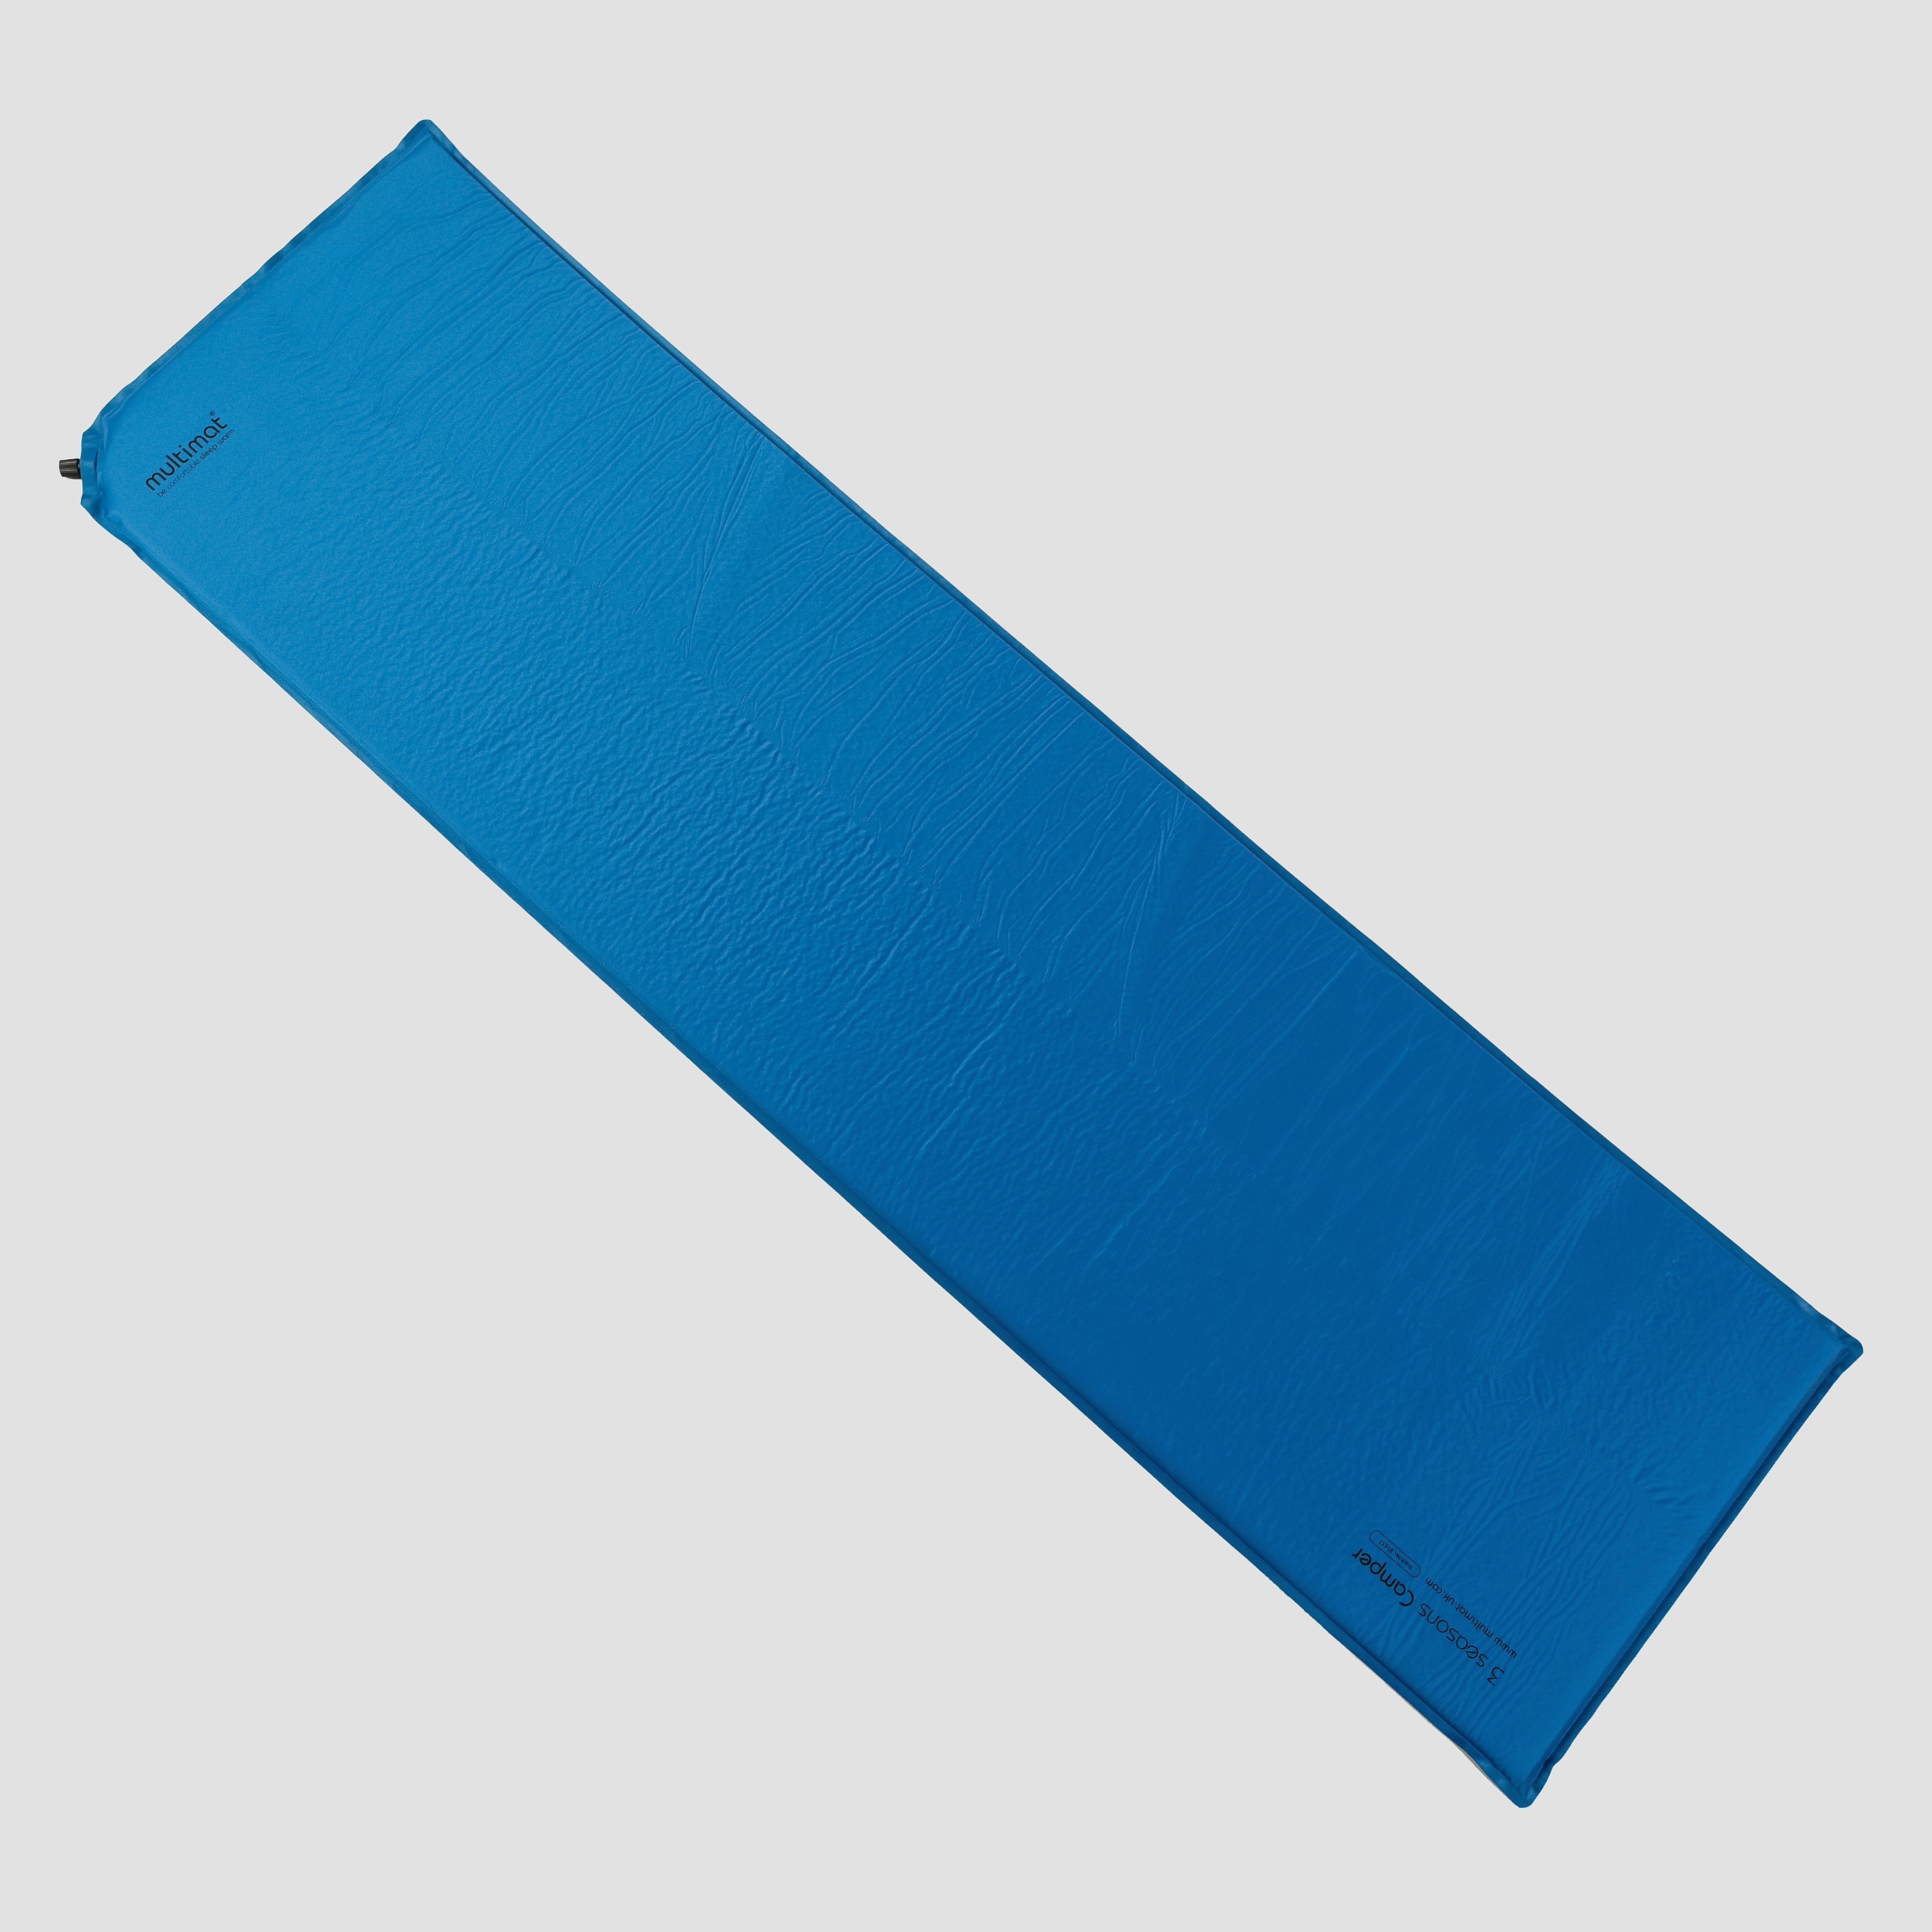 Multimat Camper 25 Self-Inflating Mat